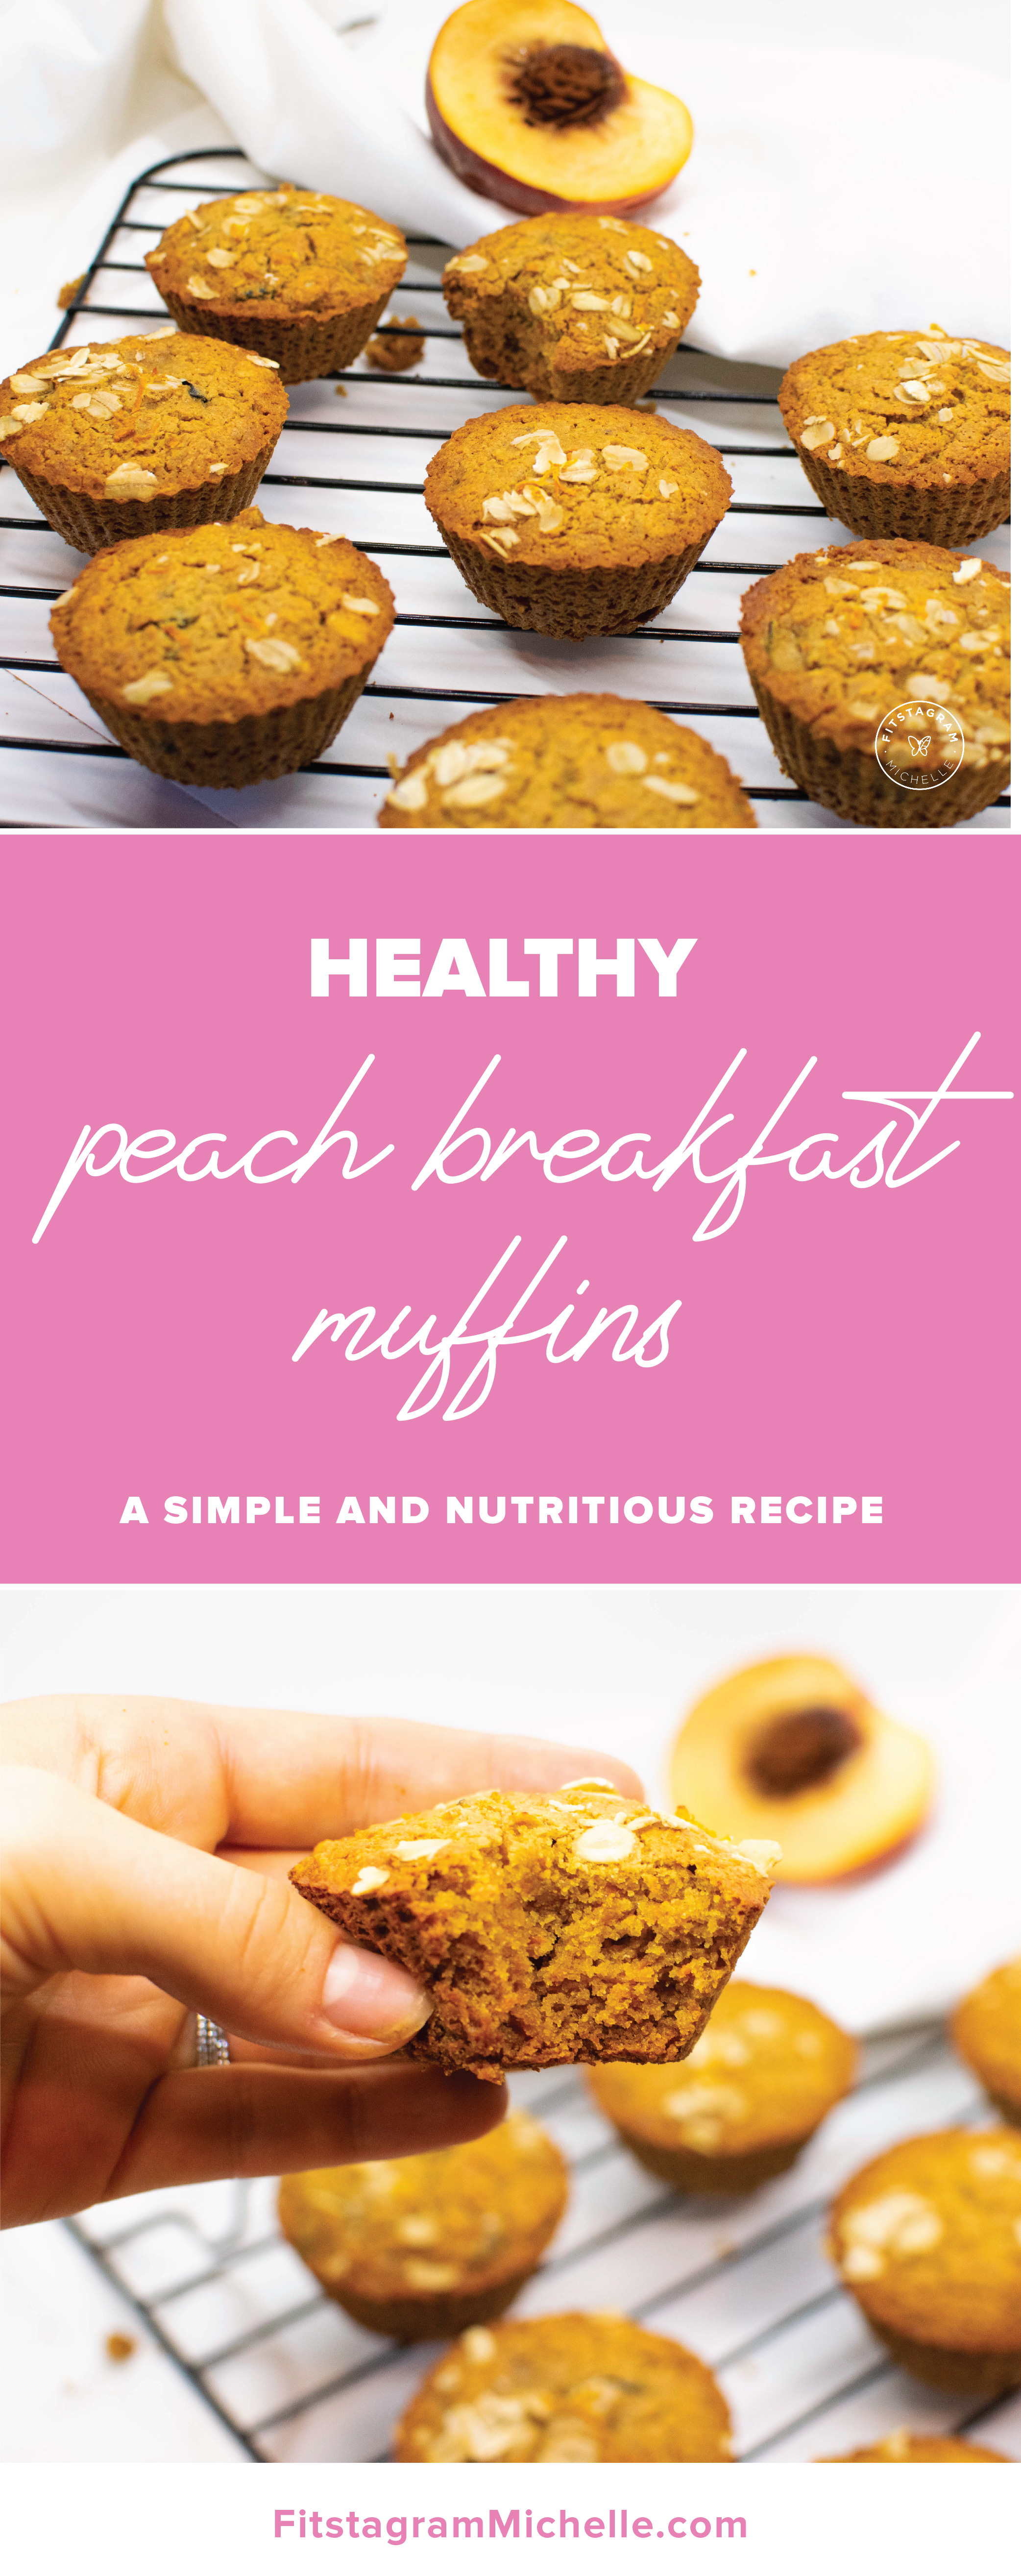 Healthy peach breakfast muffins - perfect for breakfast or snack. These are dairy-free, gluten free, and butter free.